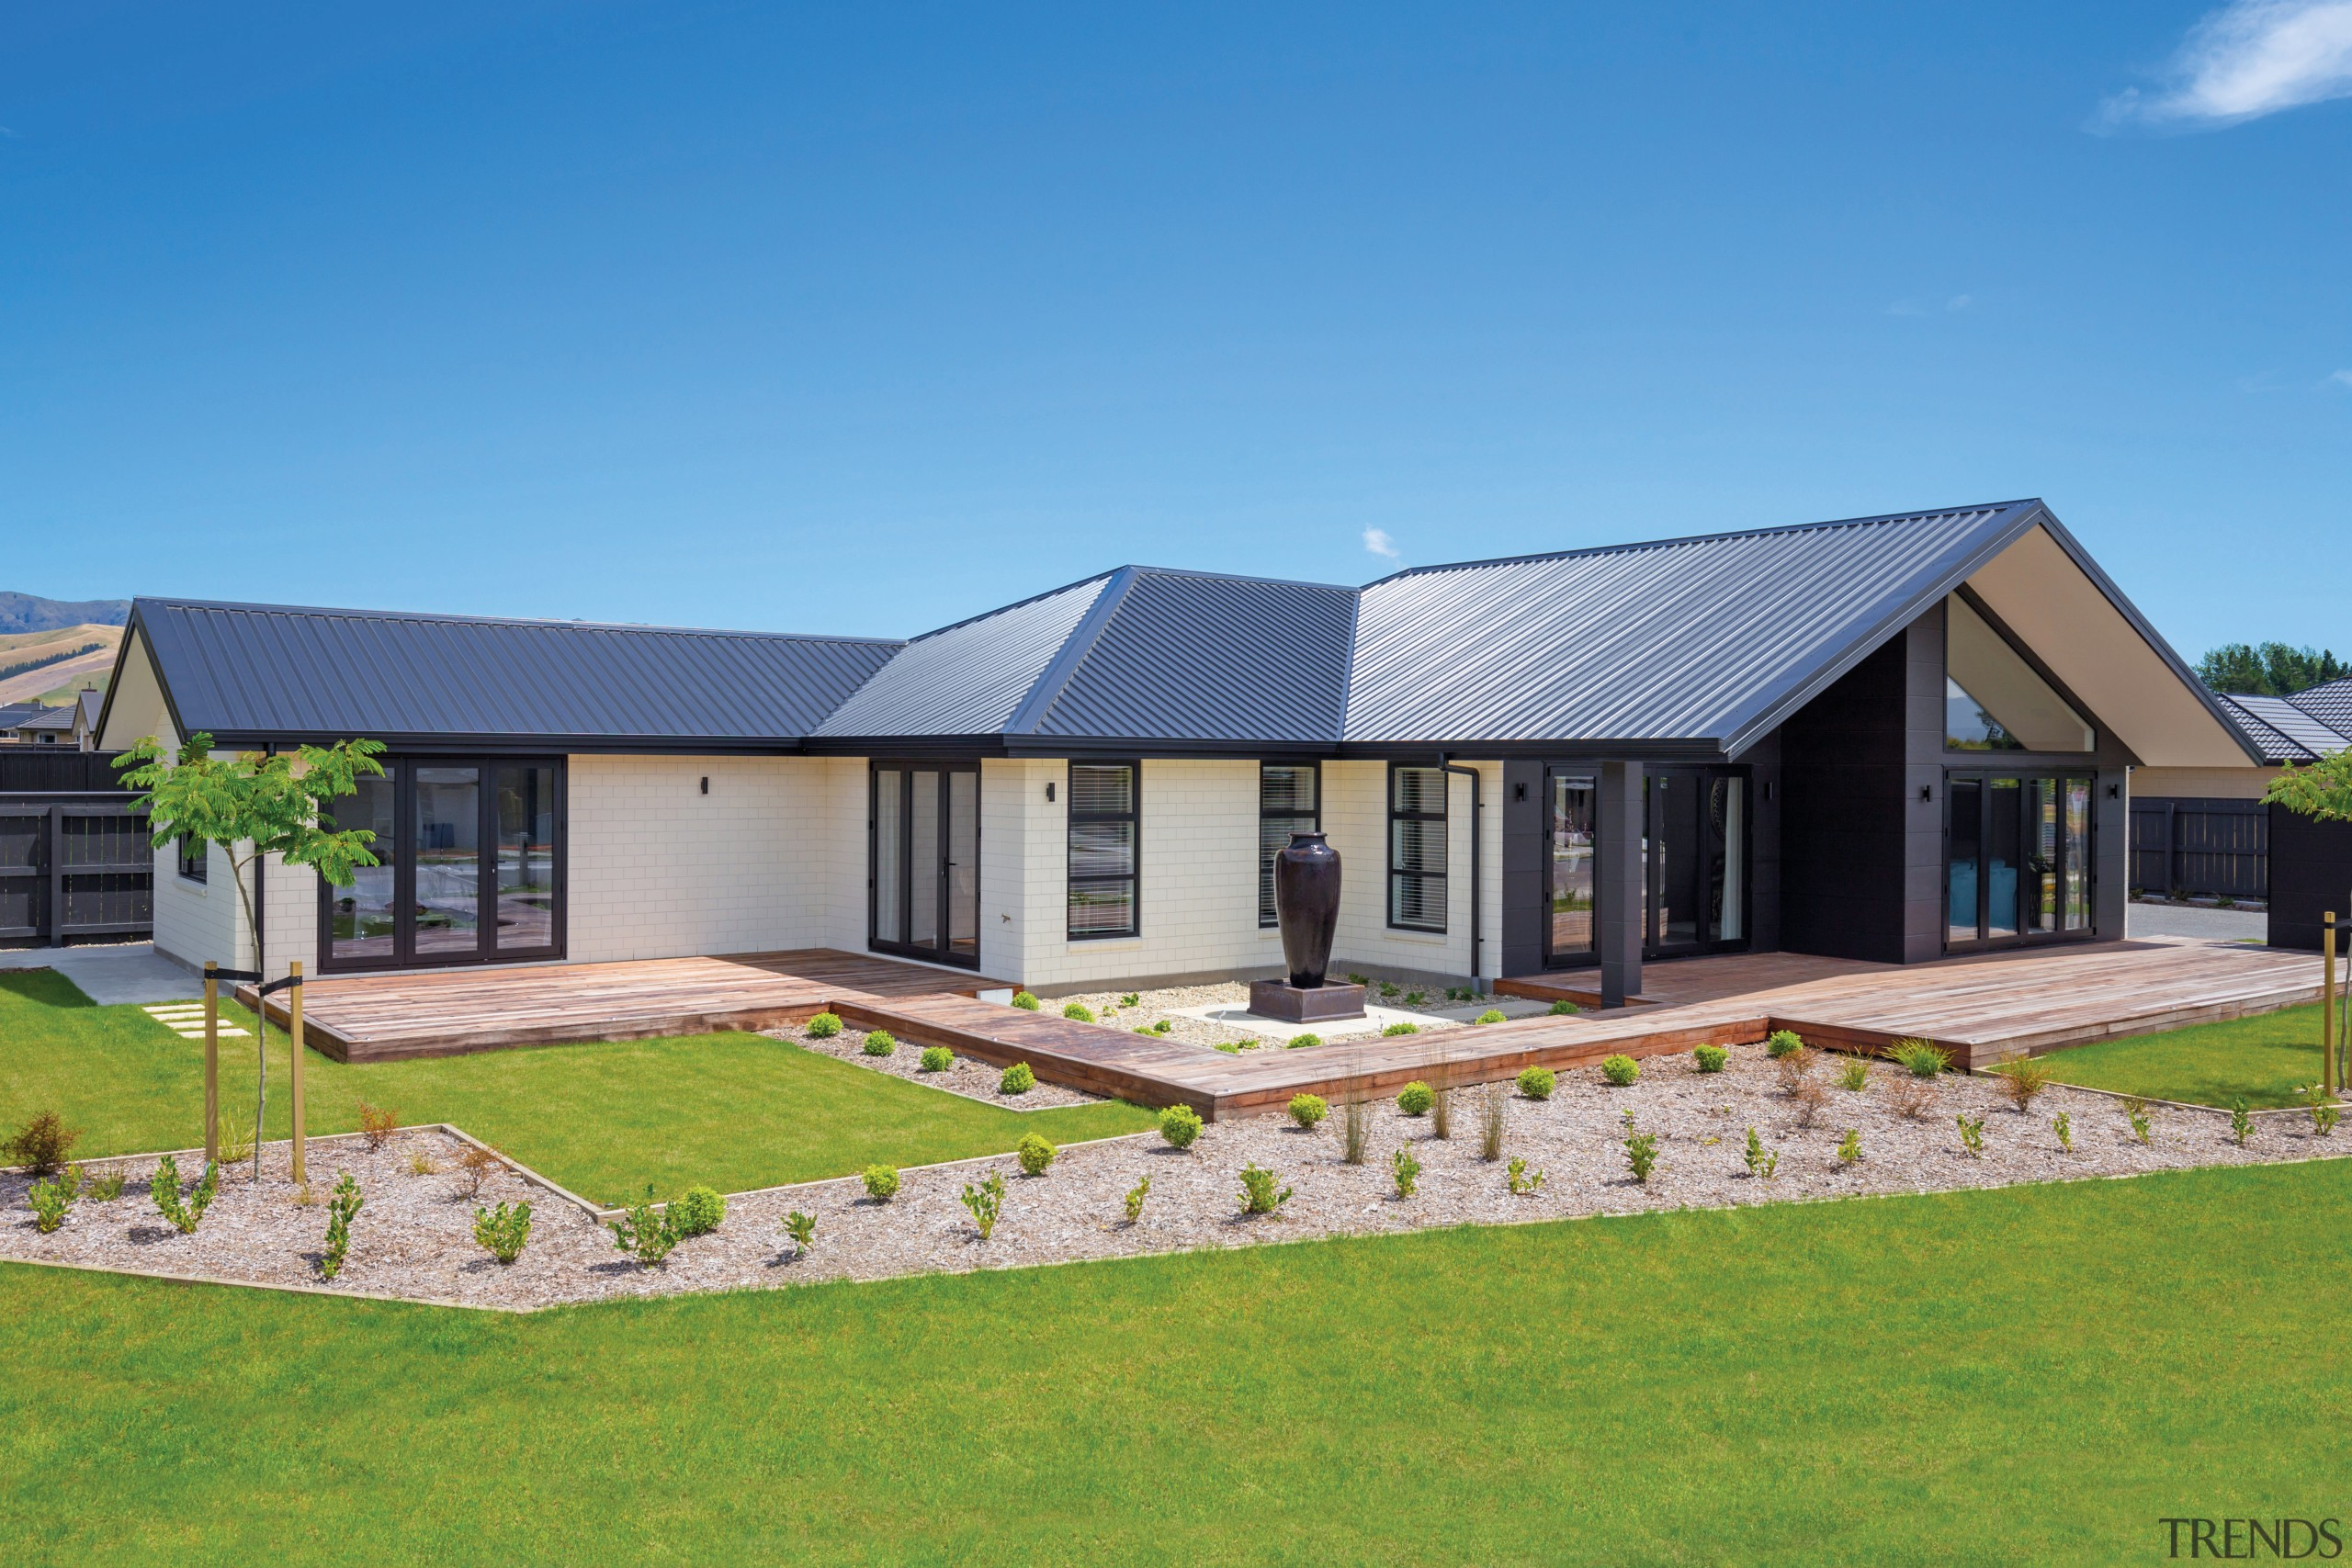 The correct choice of cladding not only affects facade, home, house, land lot, landscape, property, residential area, roof, siding, gj gardner homes